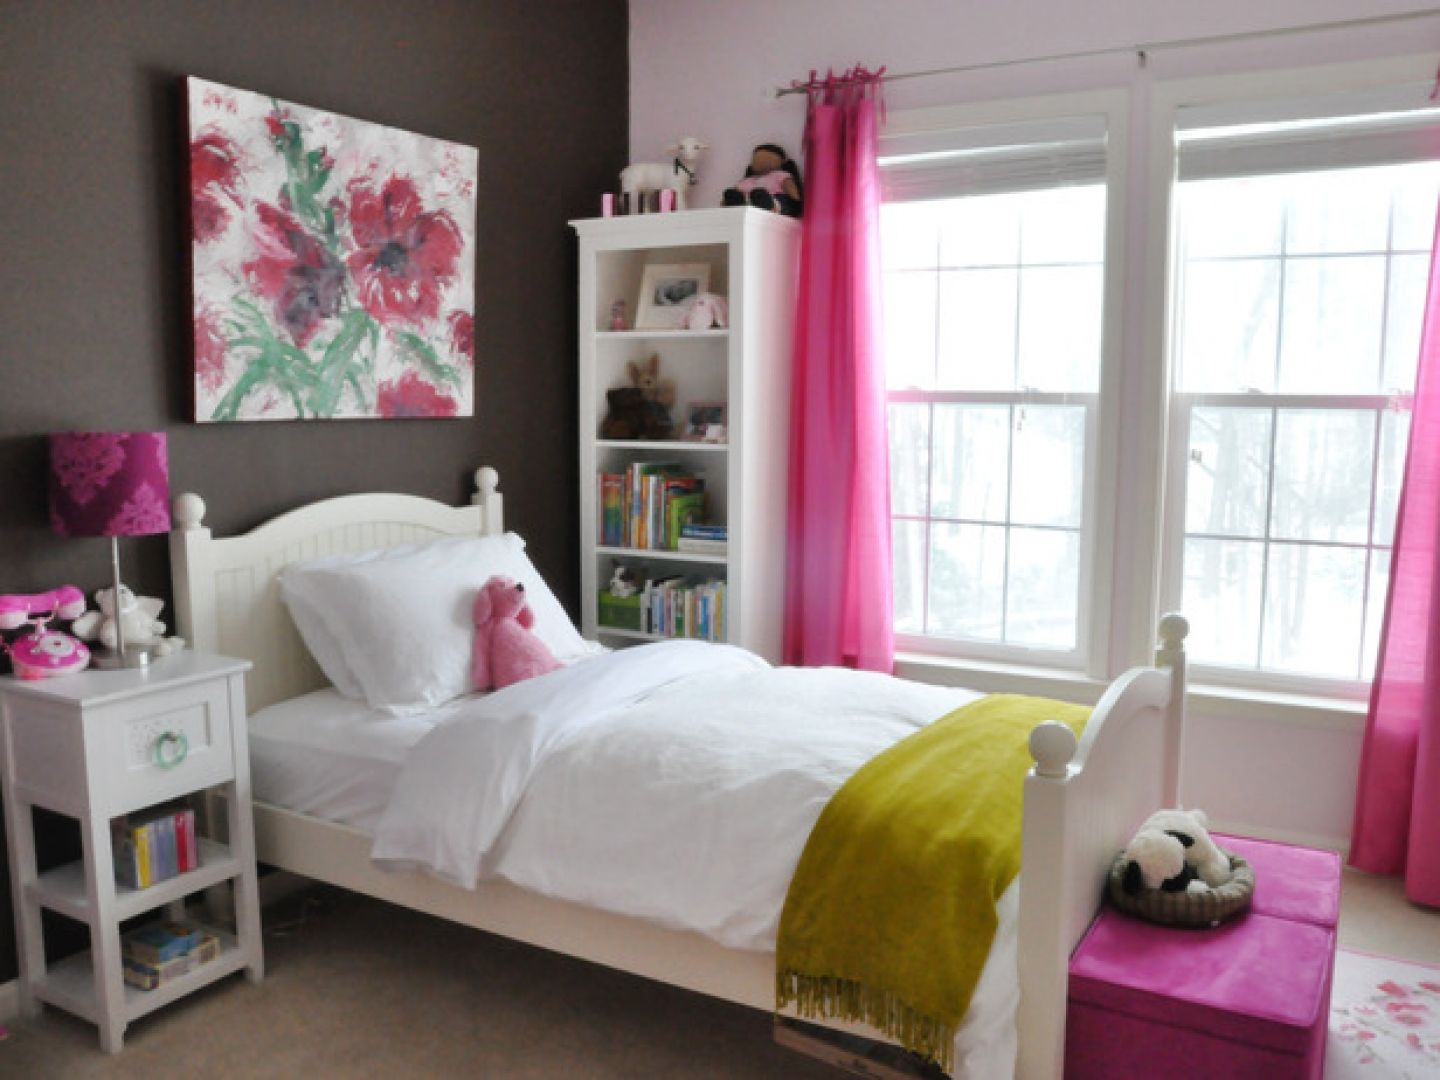 Bedroom Ideas For Teenagers (View 6 of 10)